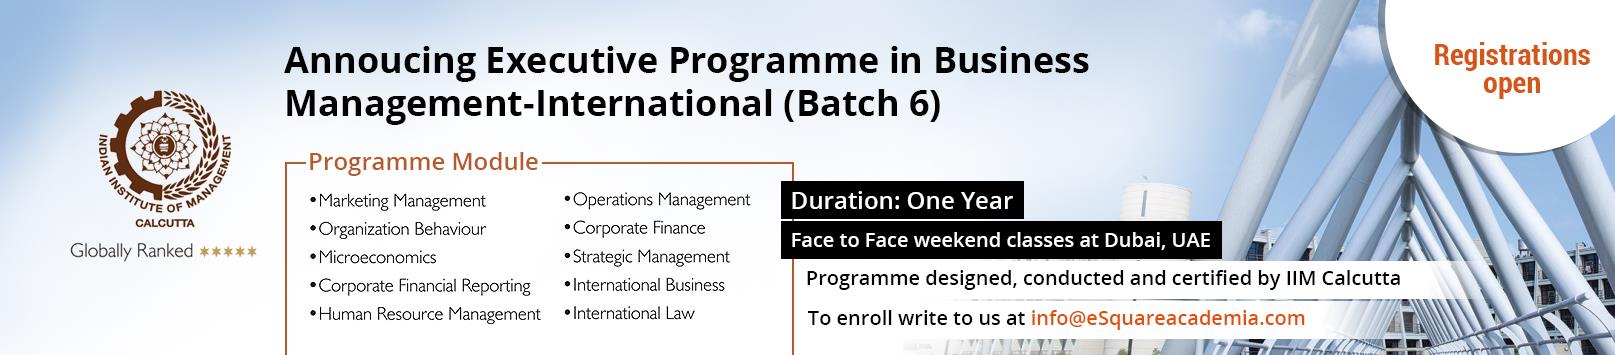 iim calcutta launches the sixth batch of the executive programme in business management international